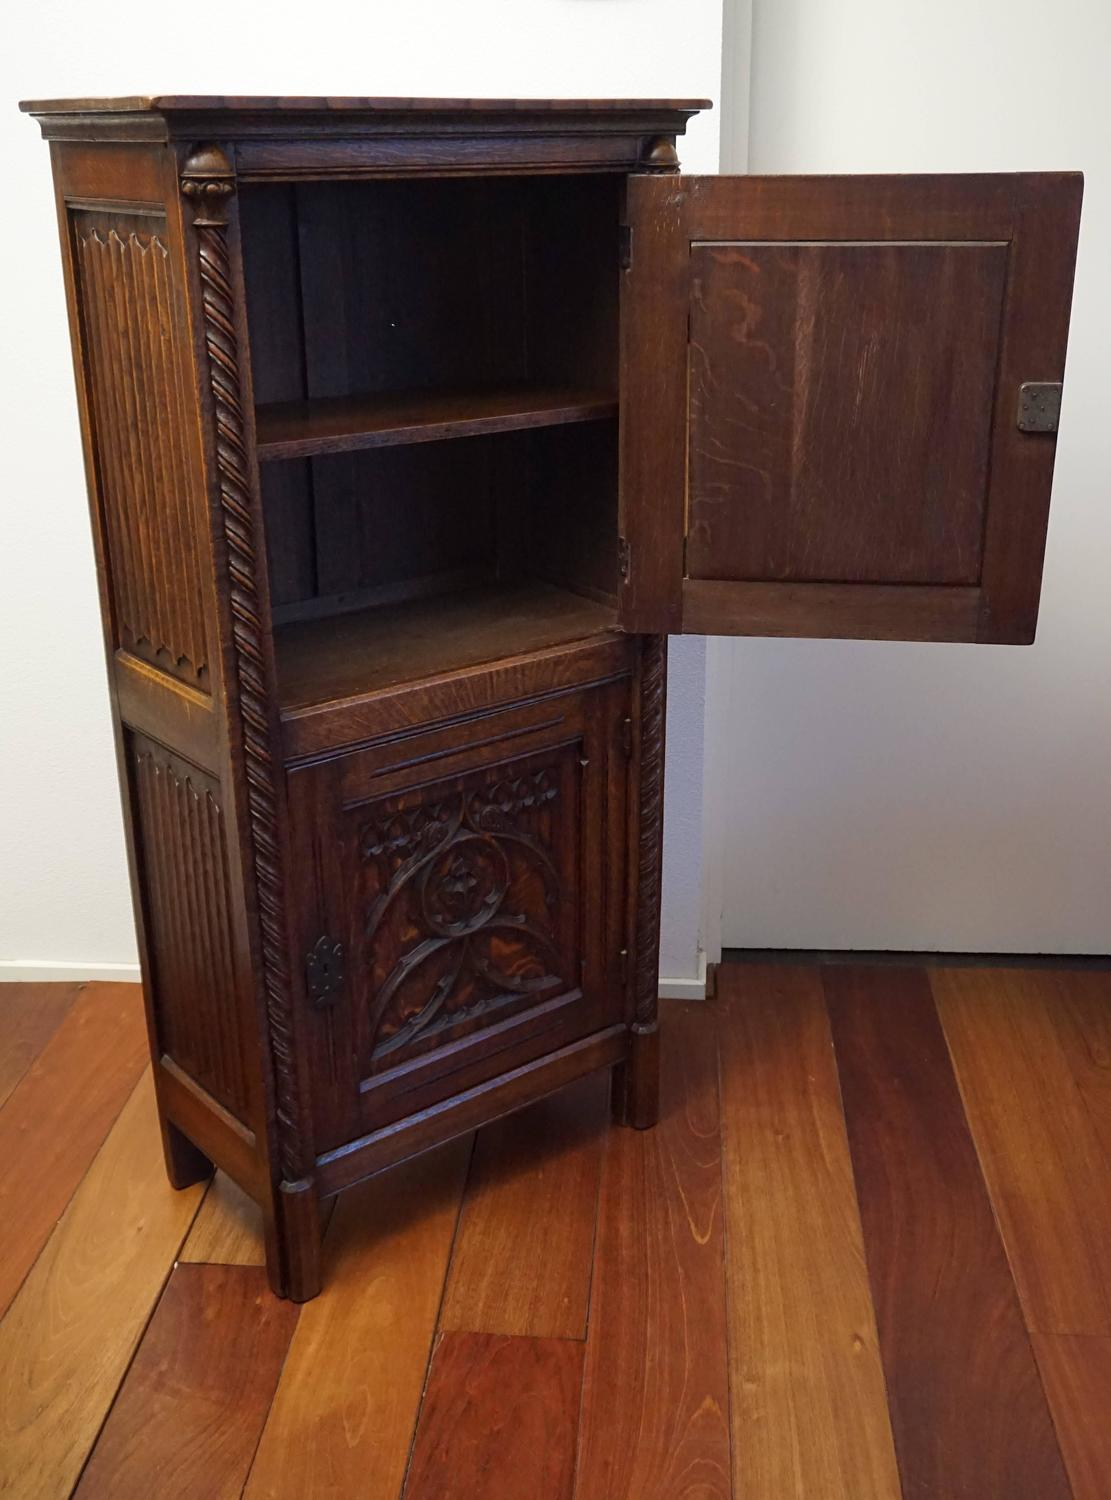 Gothic Revival Bookcase Carved Antique Cabinet With Wrought Iron Lock Plates For Sale At 1stdibs